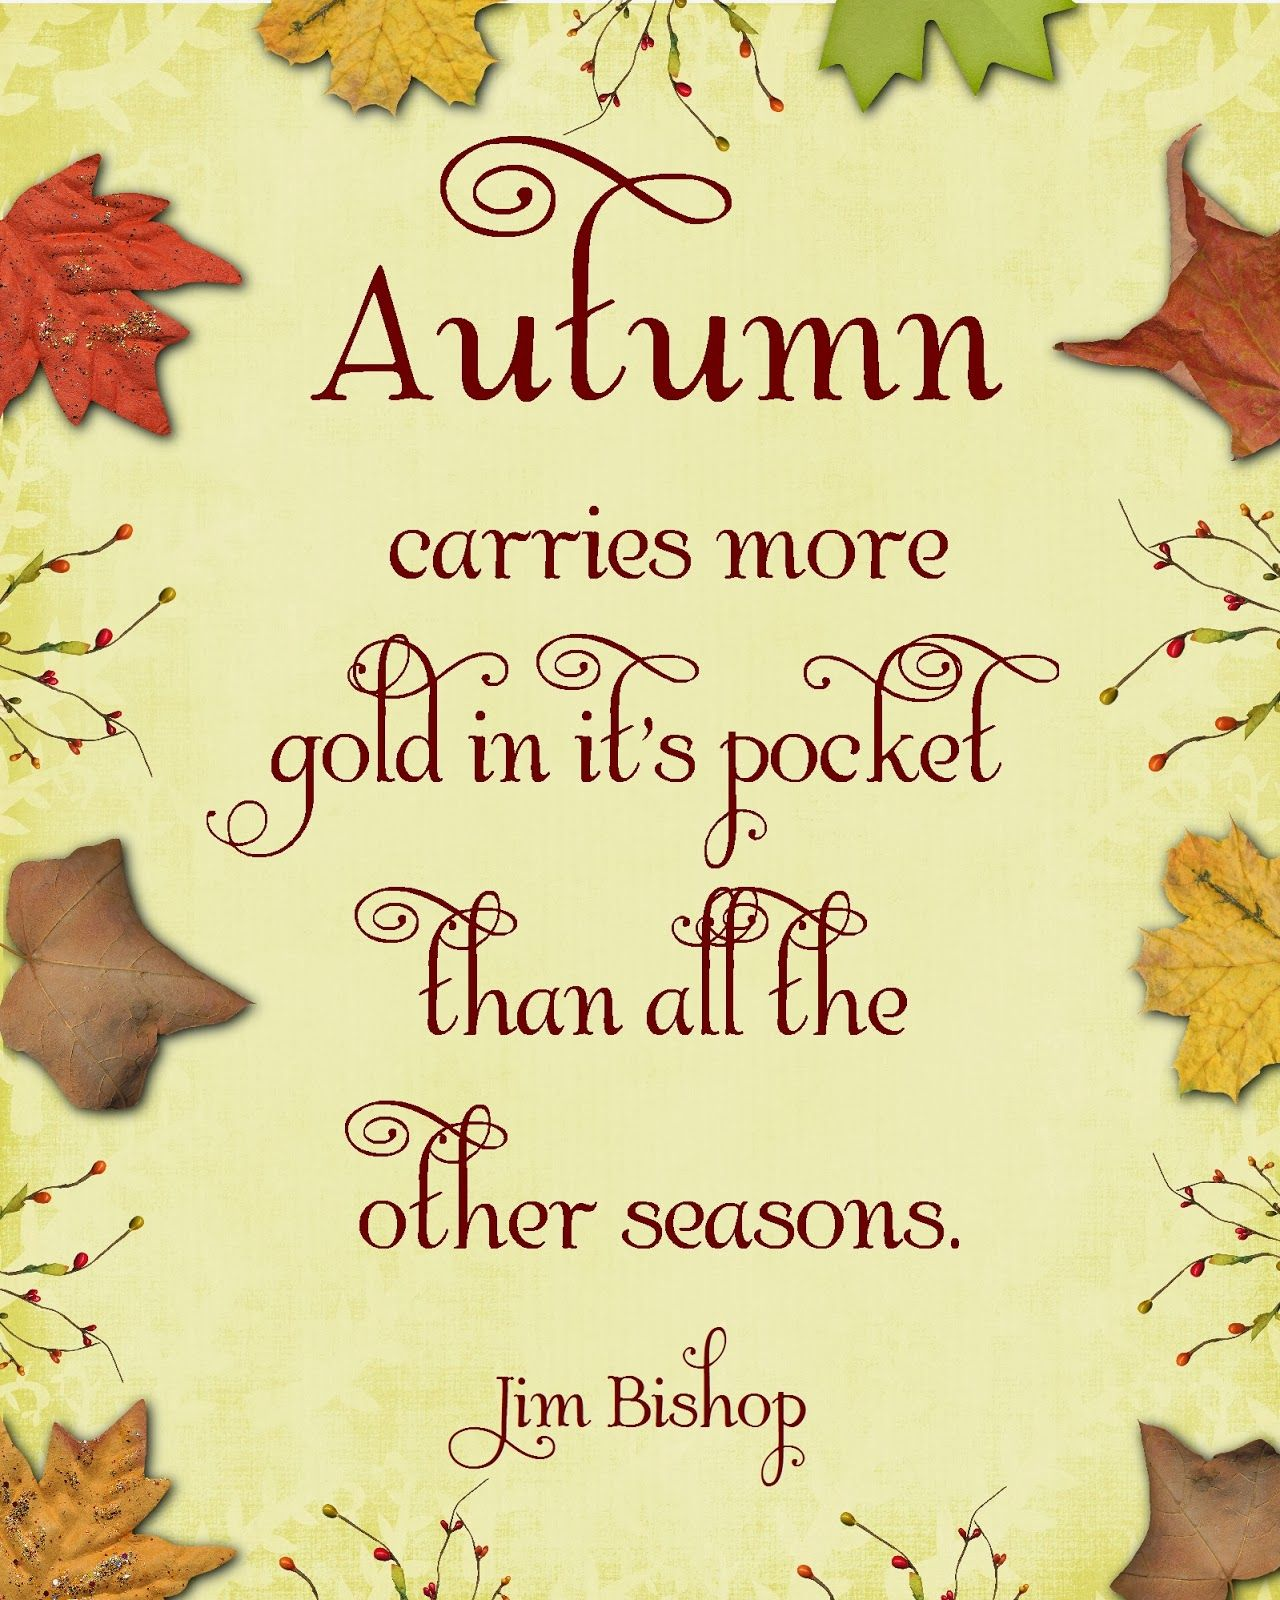 High Quality Autumn Carries More Gold In Itu0027s Pocket Than All The Other Seasons Quote  Gold Leaves Seasons Autumn Quote Fall Quote